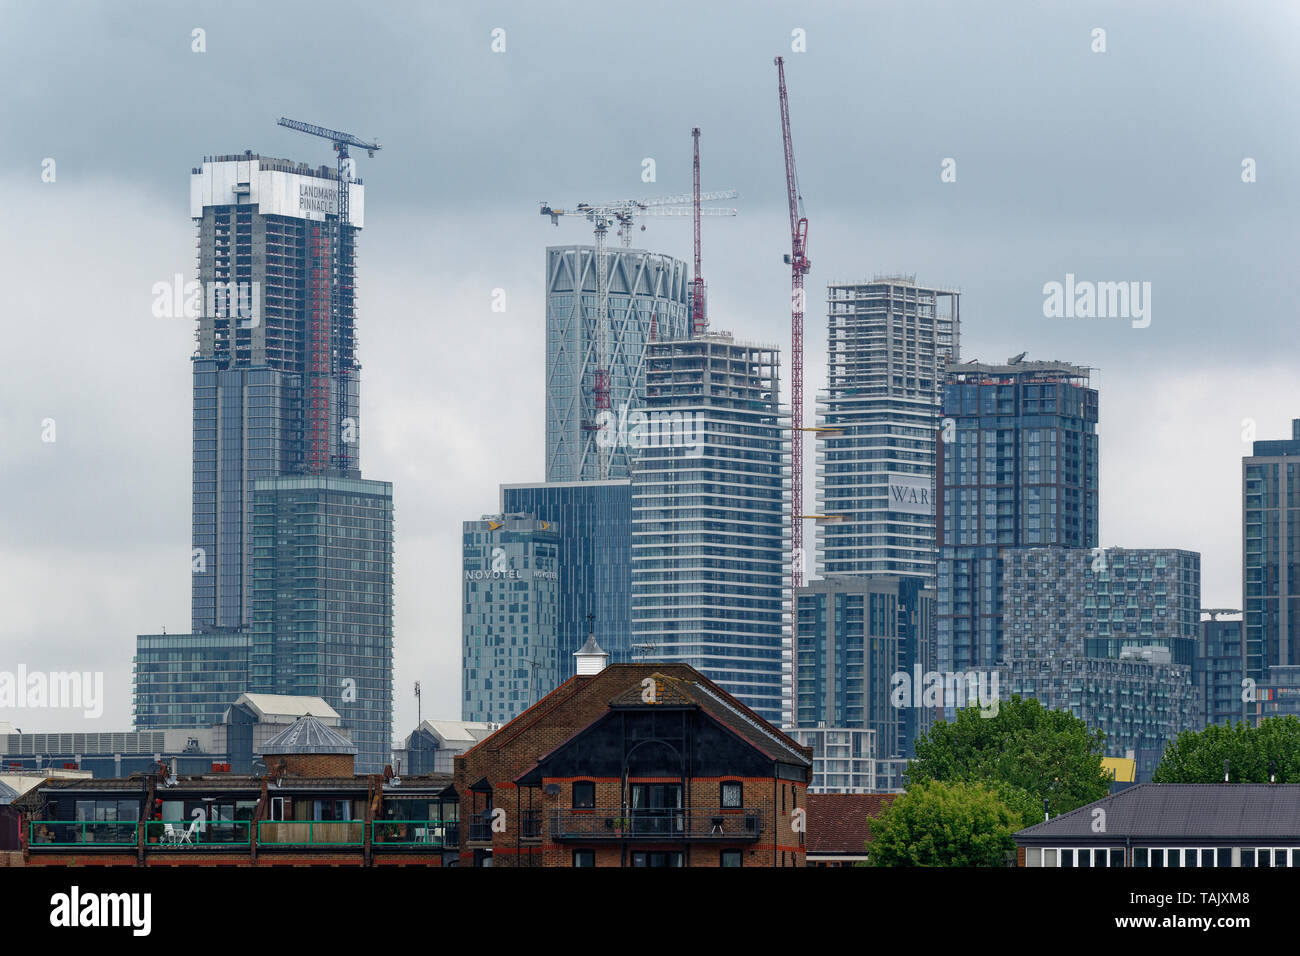 LONDON ISLE OF DOGS SKYSCRAPERS OF CANARY WHARF SHOWING CONTINUOUS BUILDING DEVELOPMENT - Stock Image